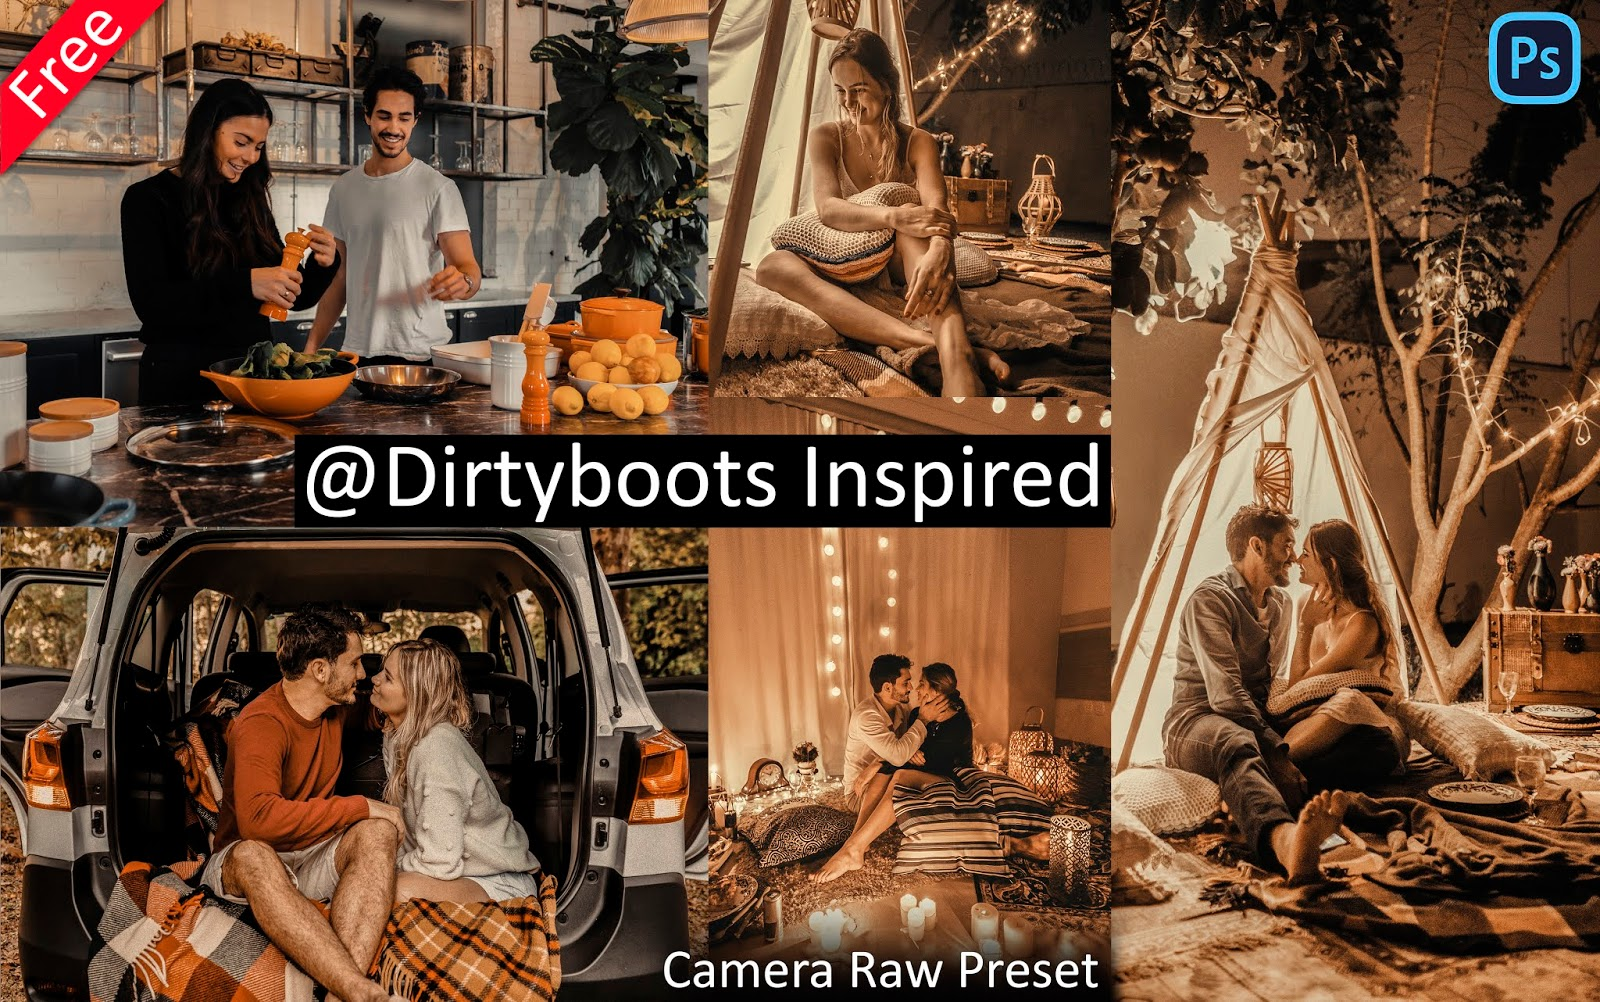 Dirtyboots Inspired Camera Raw Presets for Free | How to Edit Photos Like @dirtyboots in Photoshop